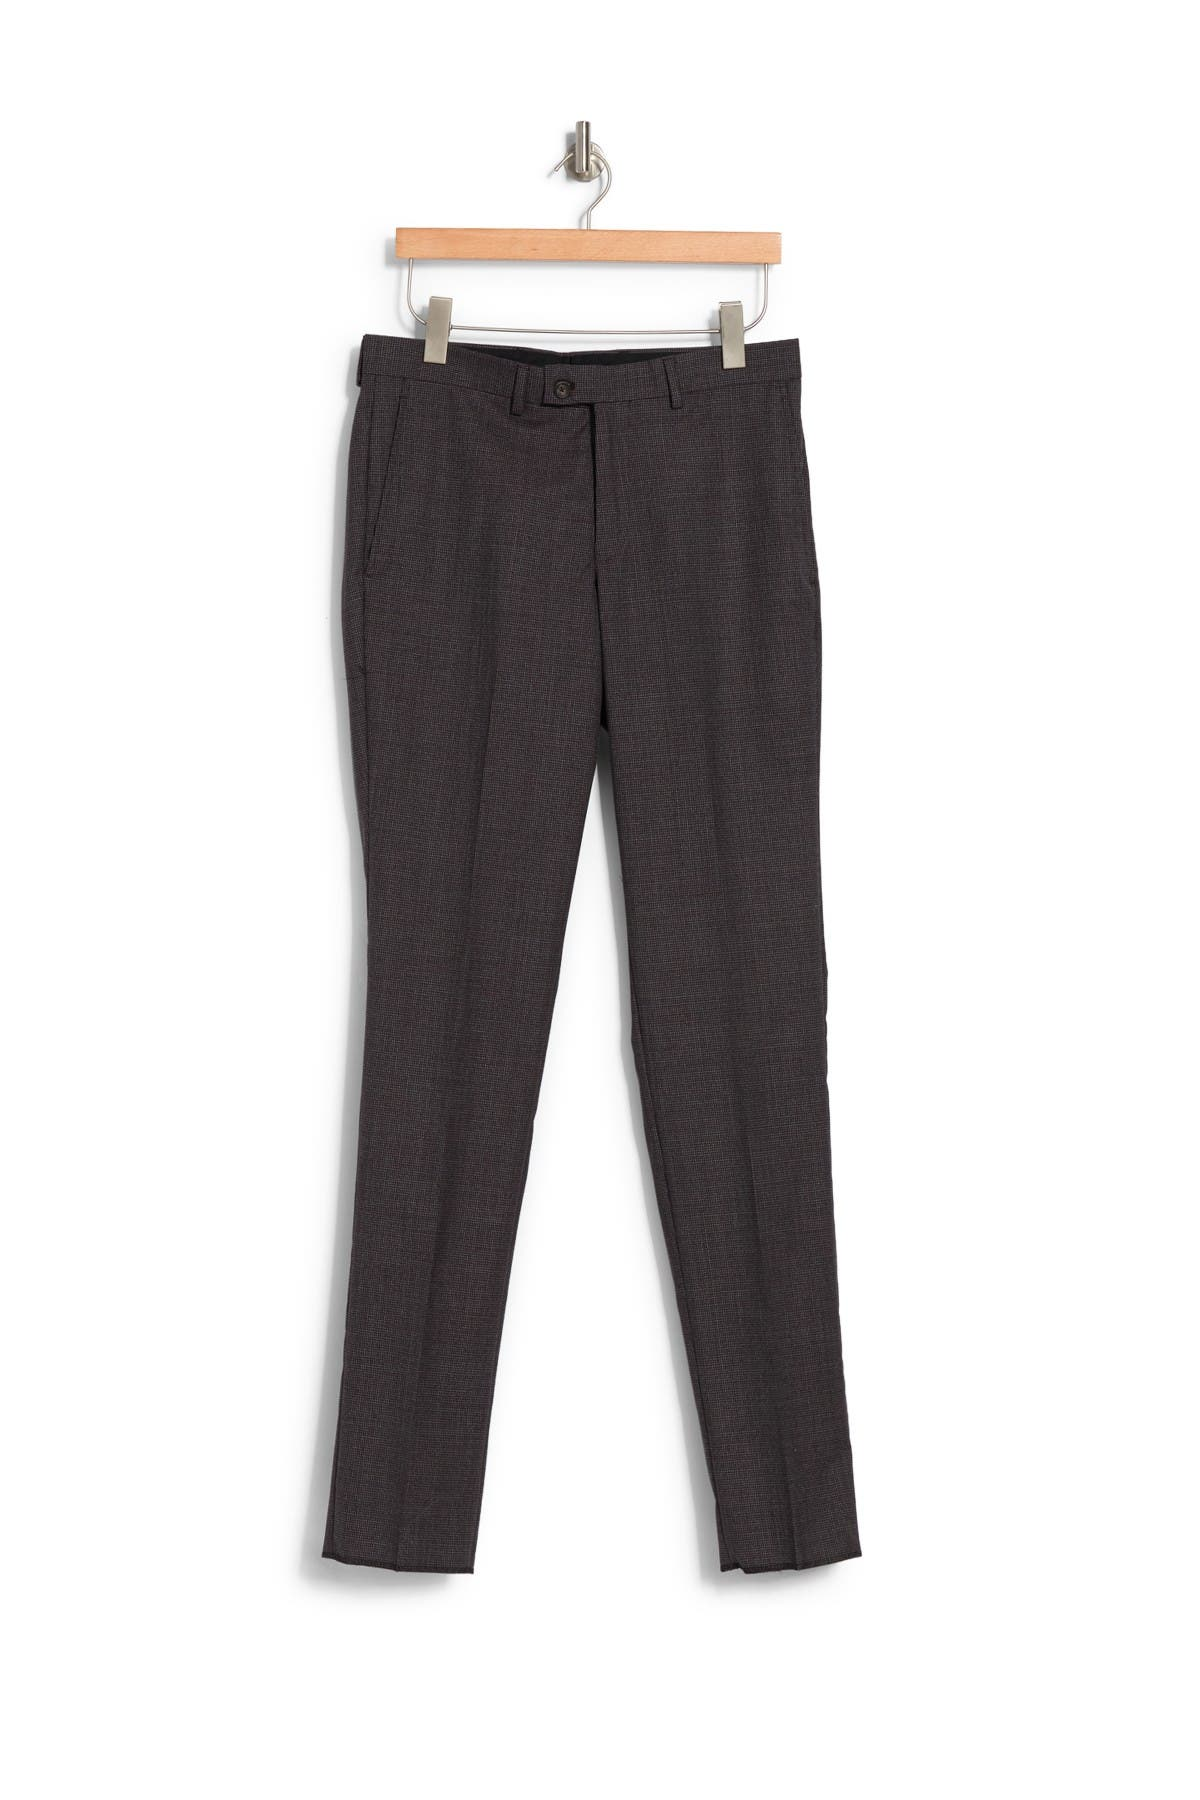 Image of Ted Baker London Slim Fit Wool Trousers